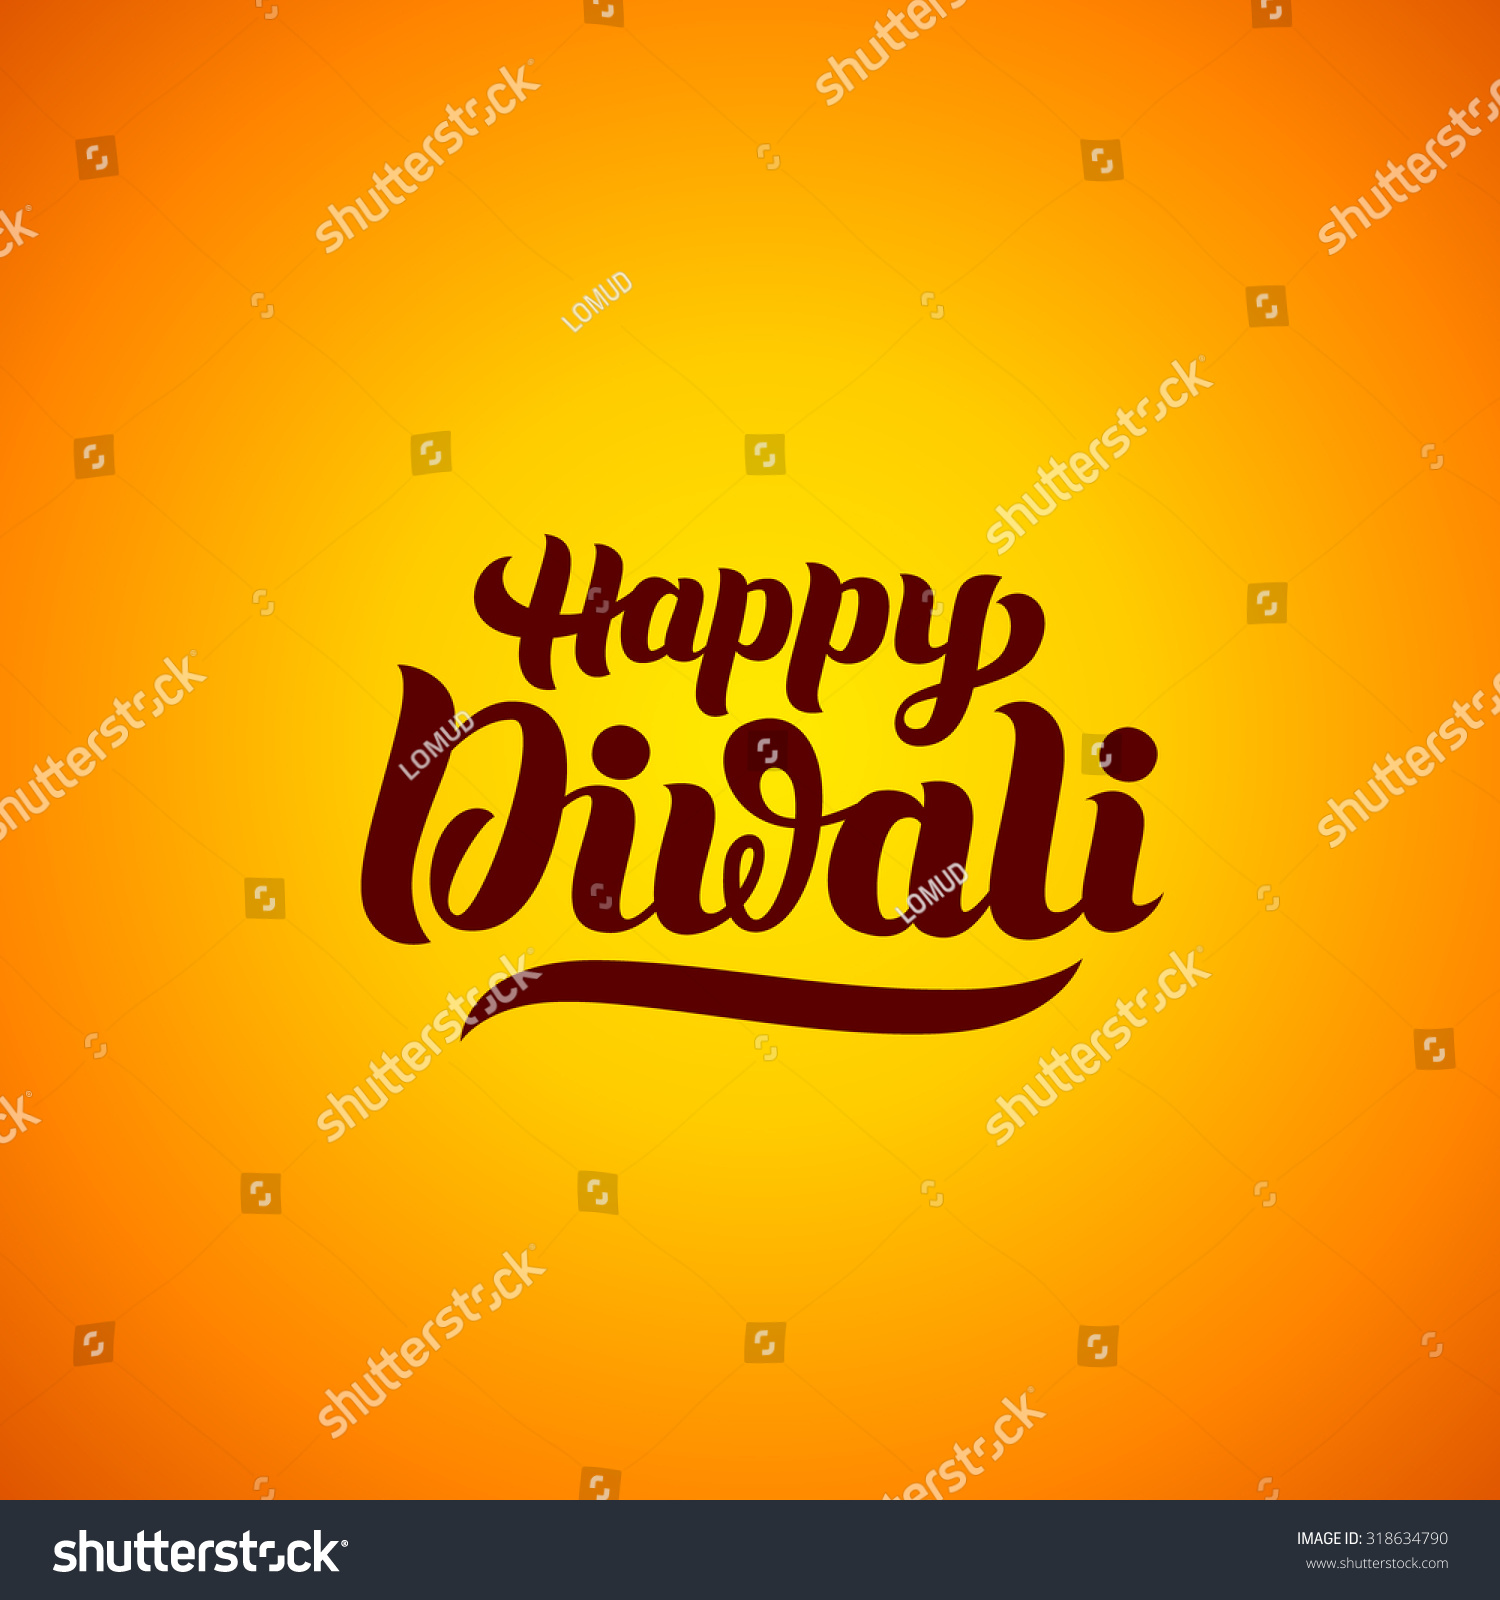 Happy diwali hand lettering indian holiday festival